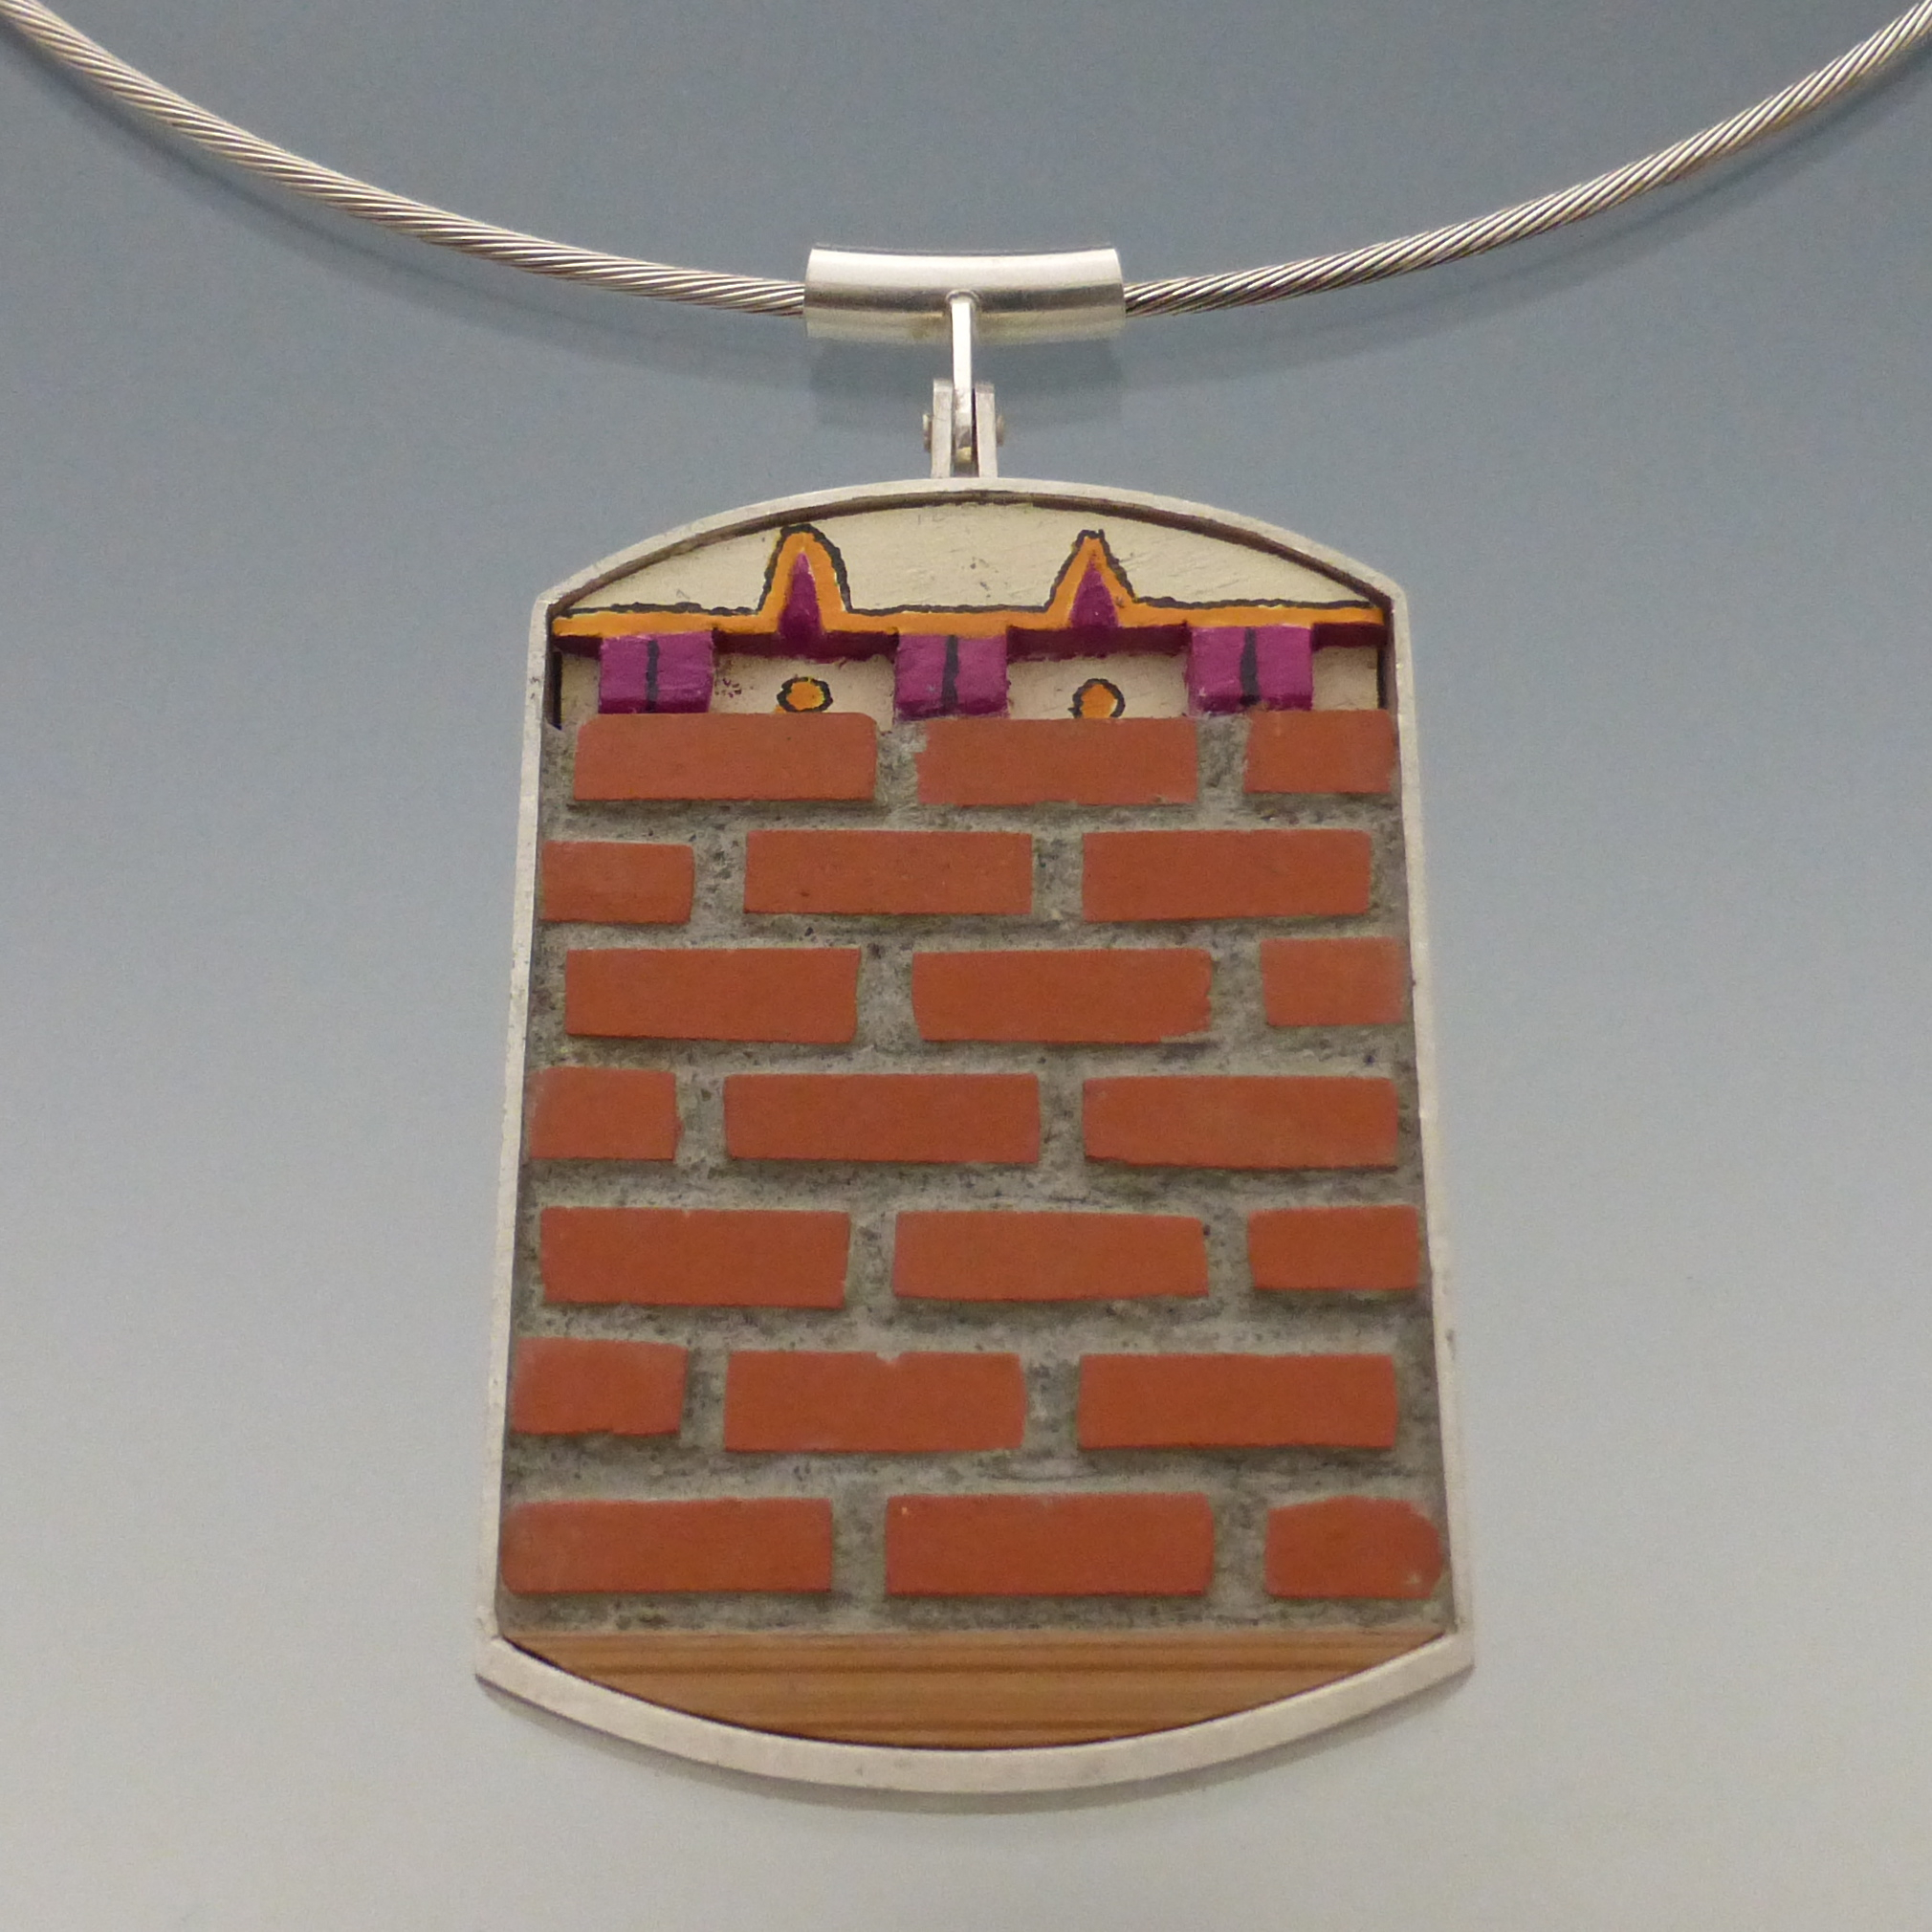 Tom McCarthy • Corbeled Pendant, from the New Home series • Sterling, concrete, terracotta, wood, paint • $60